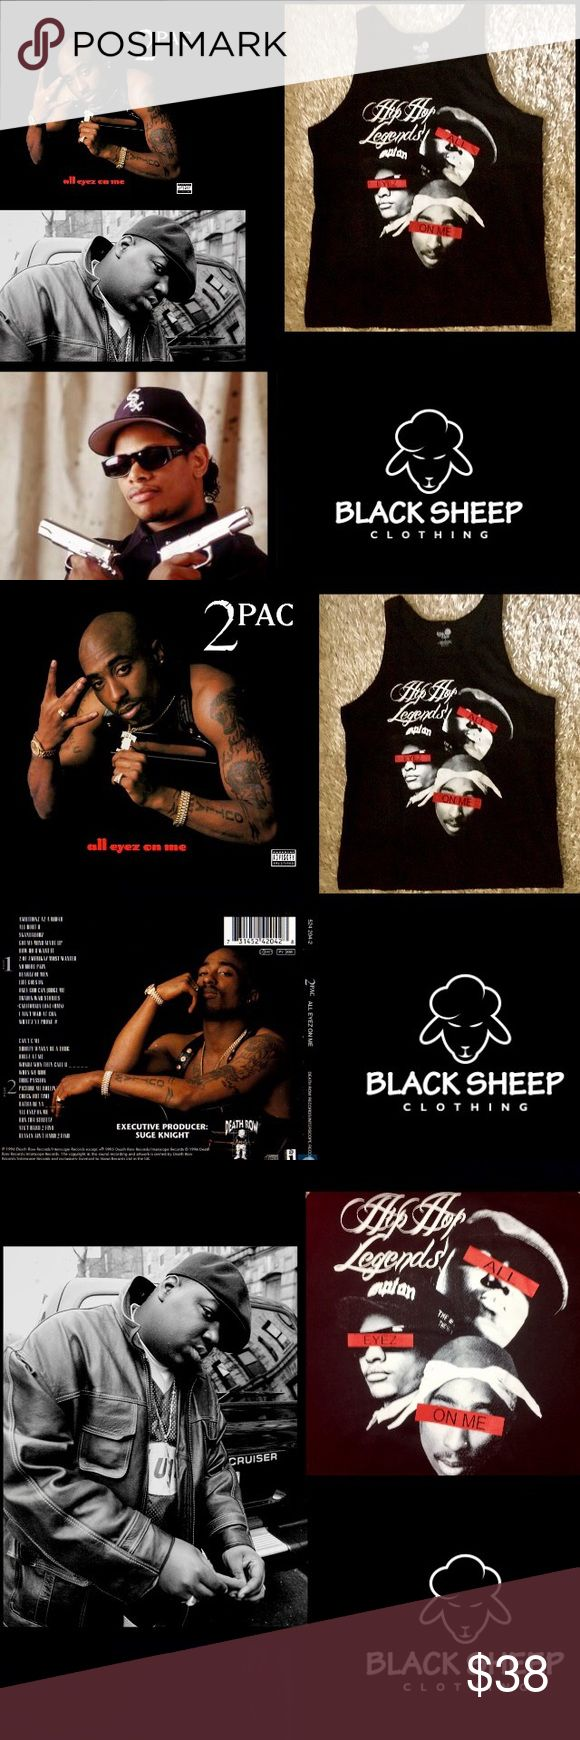 """2PAC•Eazy E•Biggie•Legends of Hip Hop Rap Tank🎶 The Life/Legacy of2Pac•All Eyez On Me Movie released 6/16/17would have been 2PAC46thBDayAll 👀 2PACS 4th&last album 2/13/96 won""""97SoulTrain R&B/SoulRap AlbumYear 2Pac MTV12/95 That's how I feelThe police watching me,Feds.females want2charge me w/false charges,sue me,jealous homeboy Everybody lookin2see what I'mma do Lyrics""""Live my life as a thug til the day I die,Iknow ya watchin,Live my life as a Boss Payer(I know ya got me in the scopes…"""